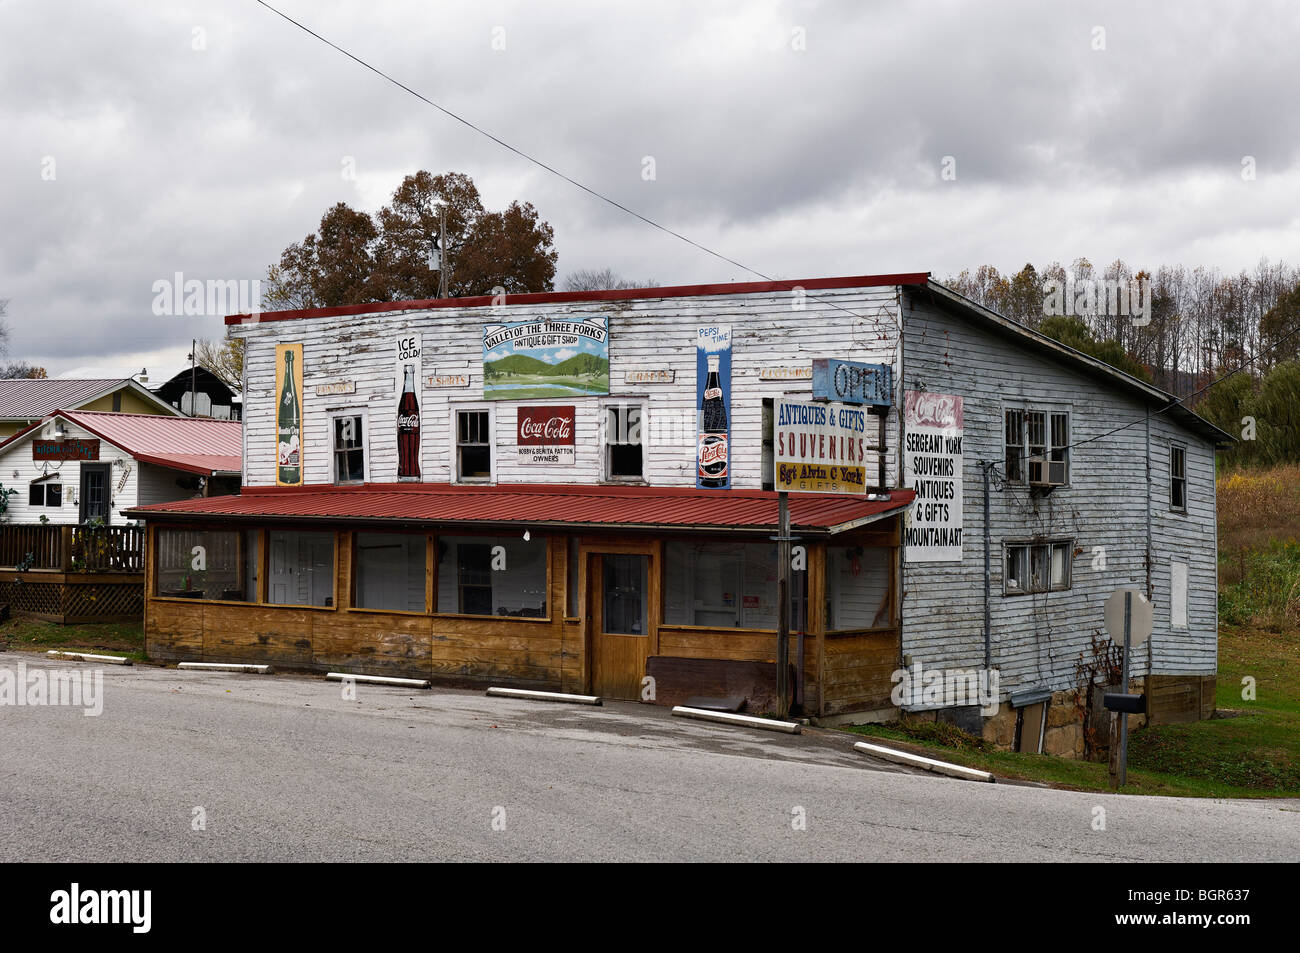 Valley of the Three Forks Antique and Gift Shop in Pall Mall, Tennessee - Stock Image